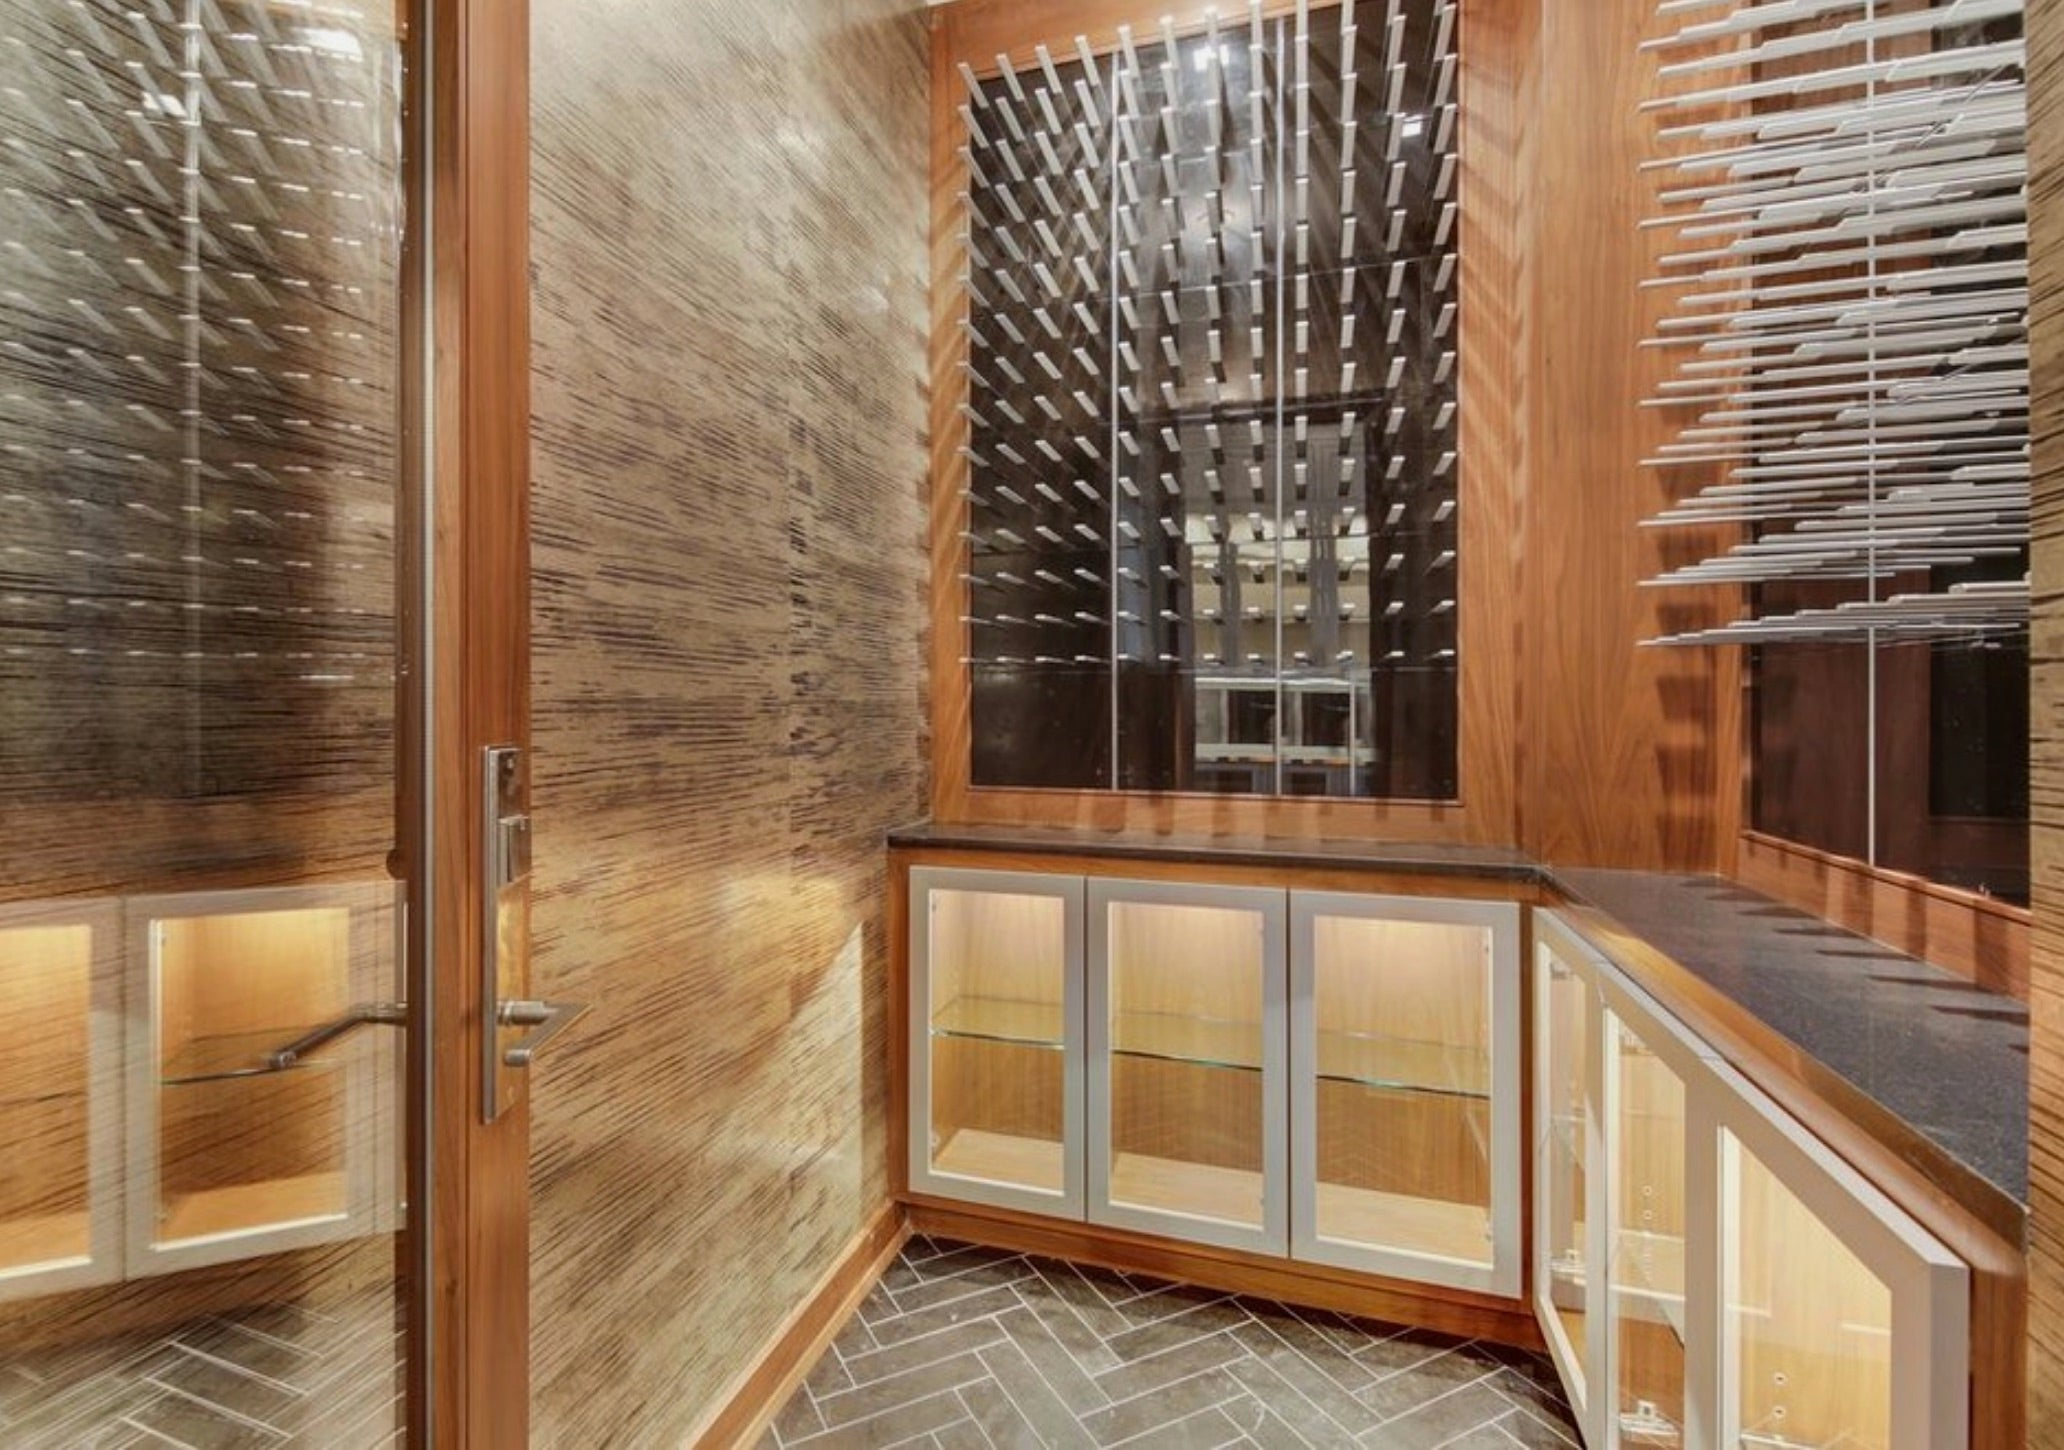 transitional wine cellar design with peg wine racks